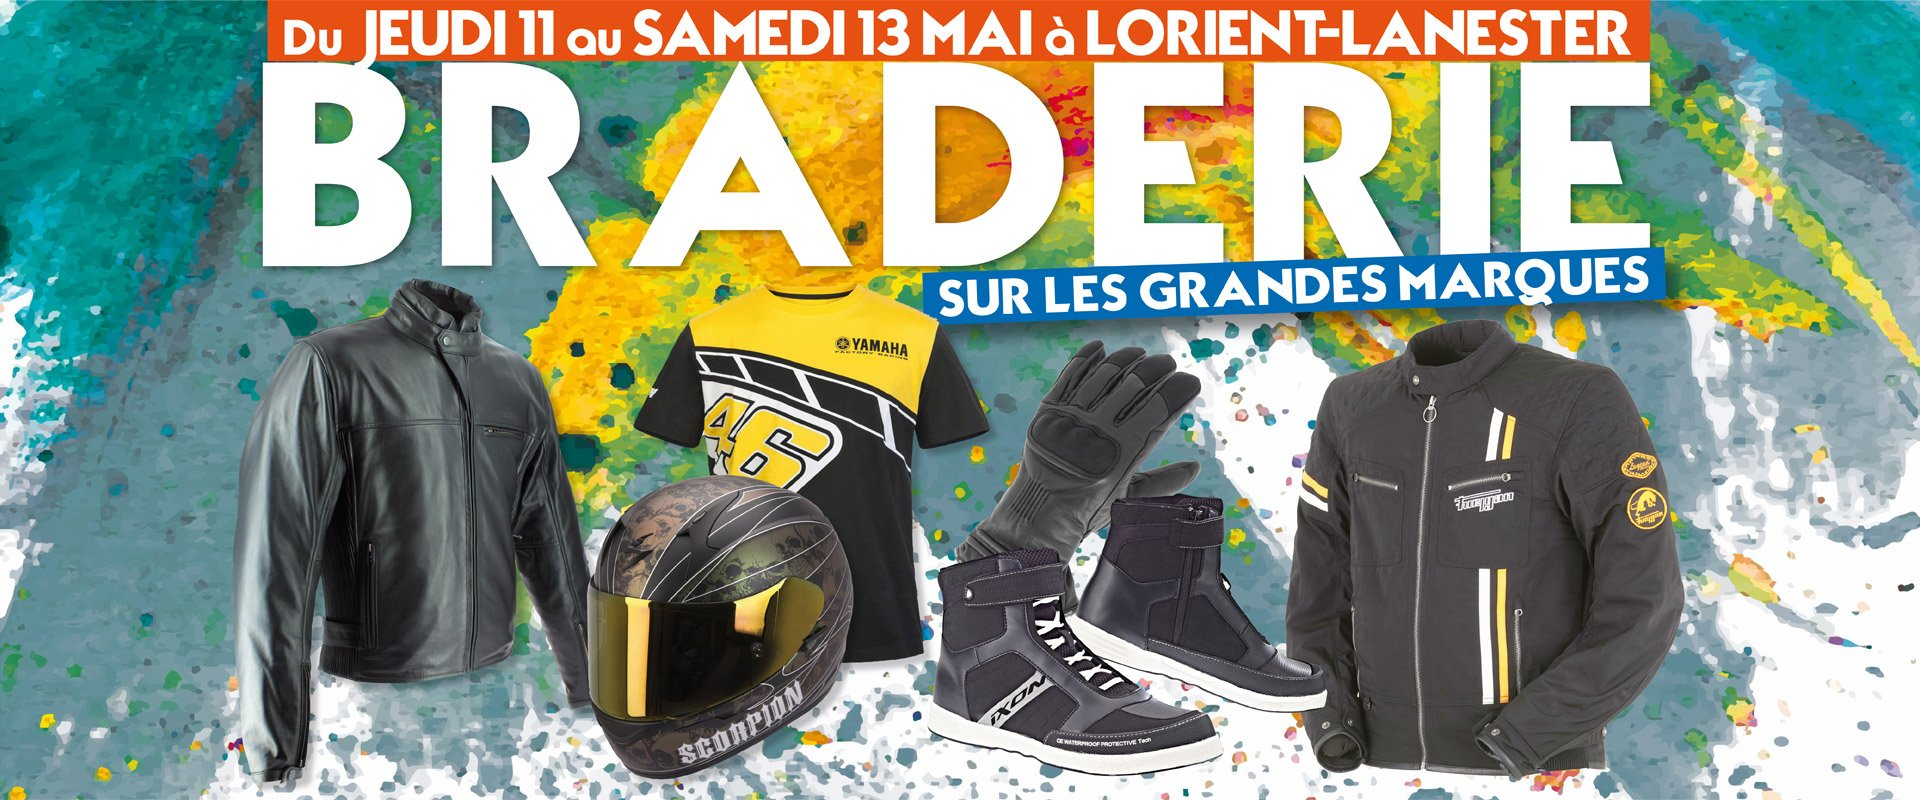 Braderie Cardy Lorient